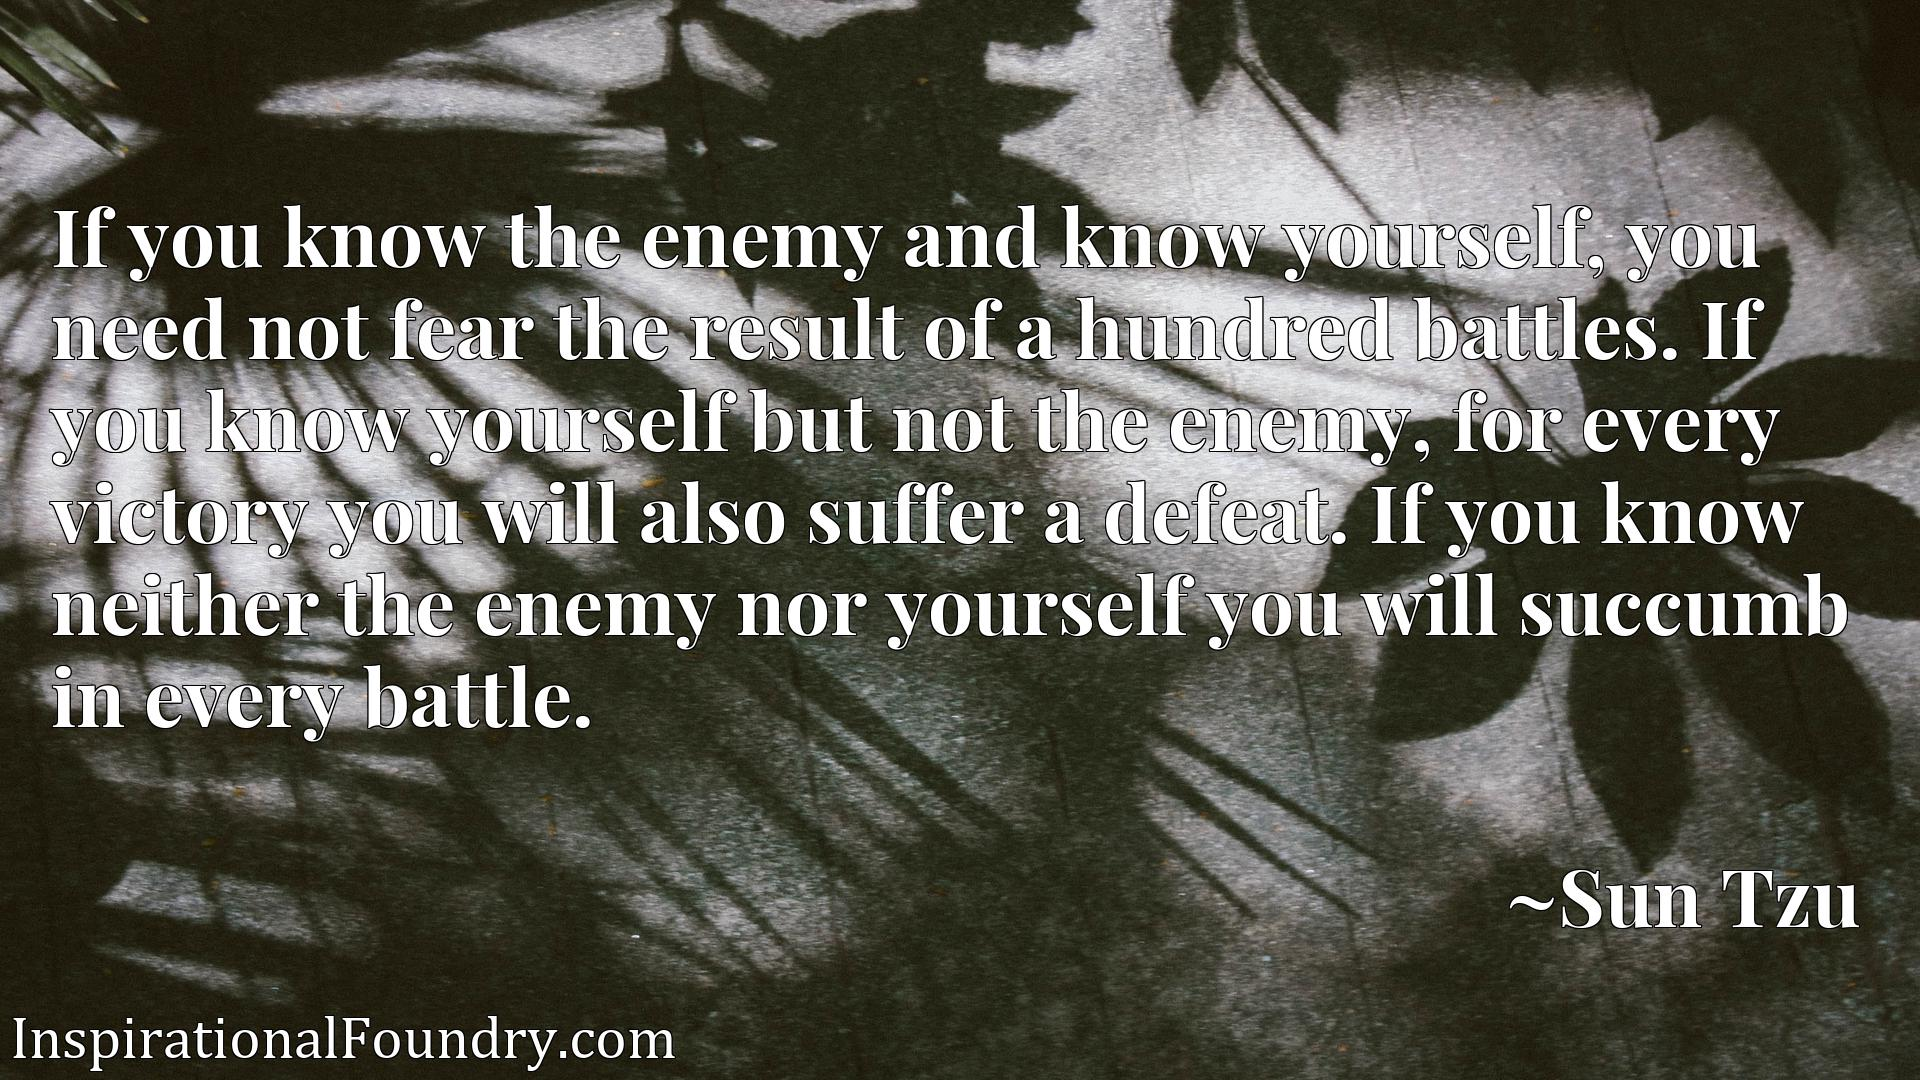 If you know the enemy and know yourself, you need not fear the result of a hundred battles. If you know yourself but not the enemy, for every victory you will also suffer a defeat. If you know neither the enemy nor yourself you will succumb in every battle.